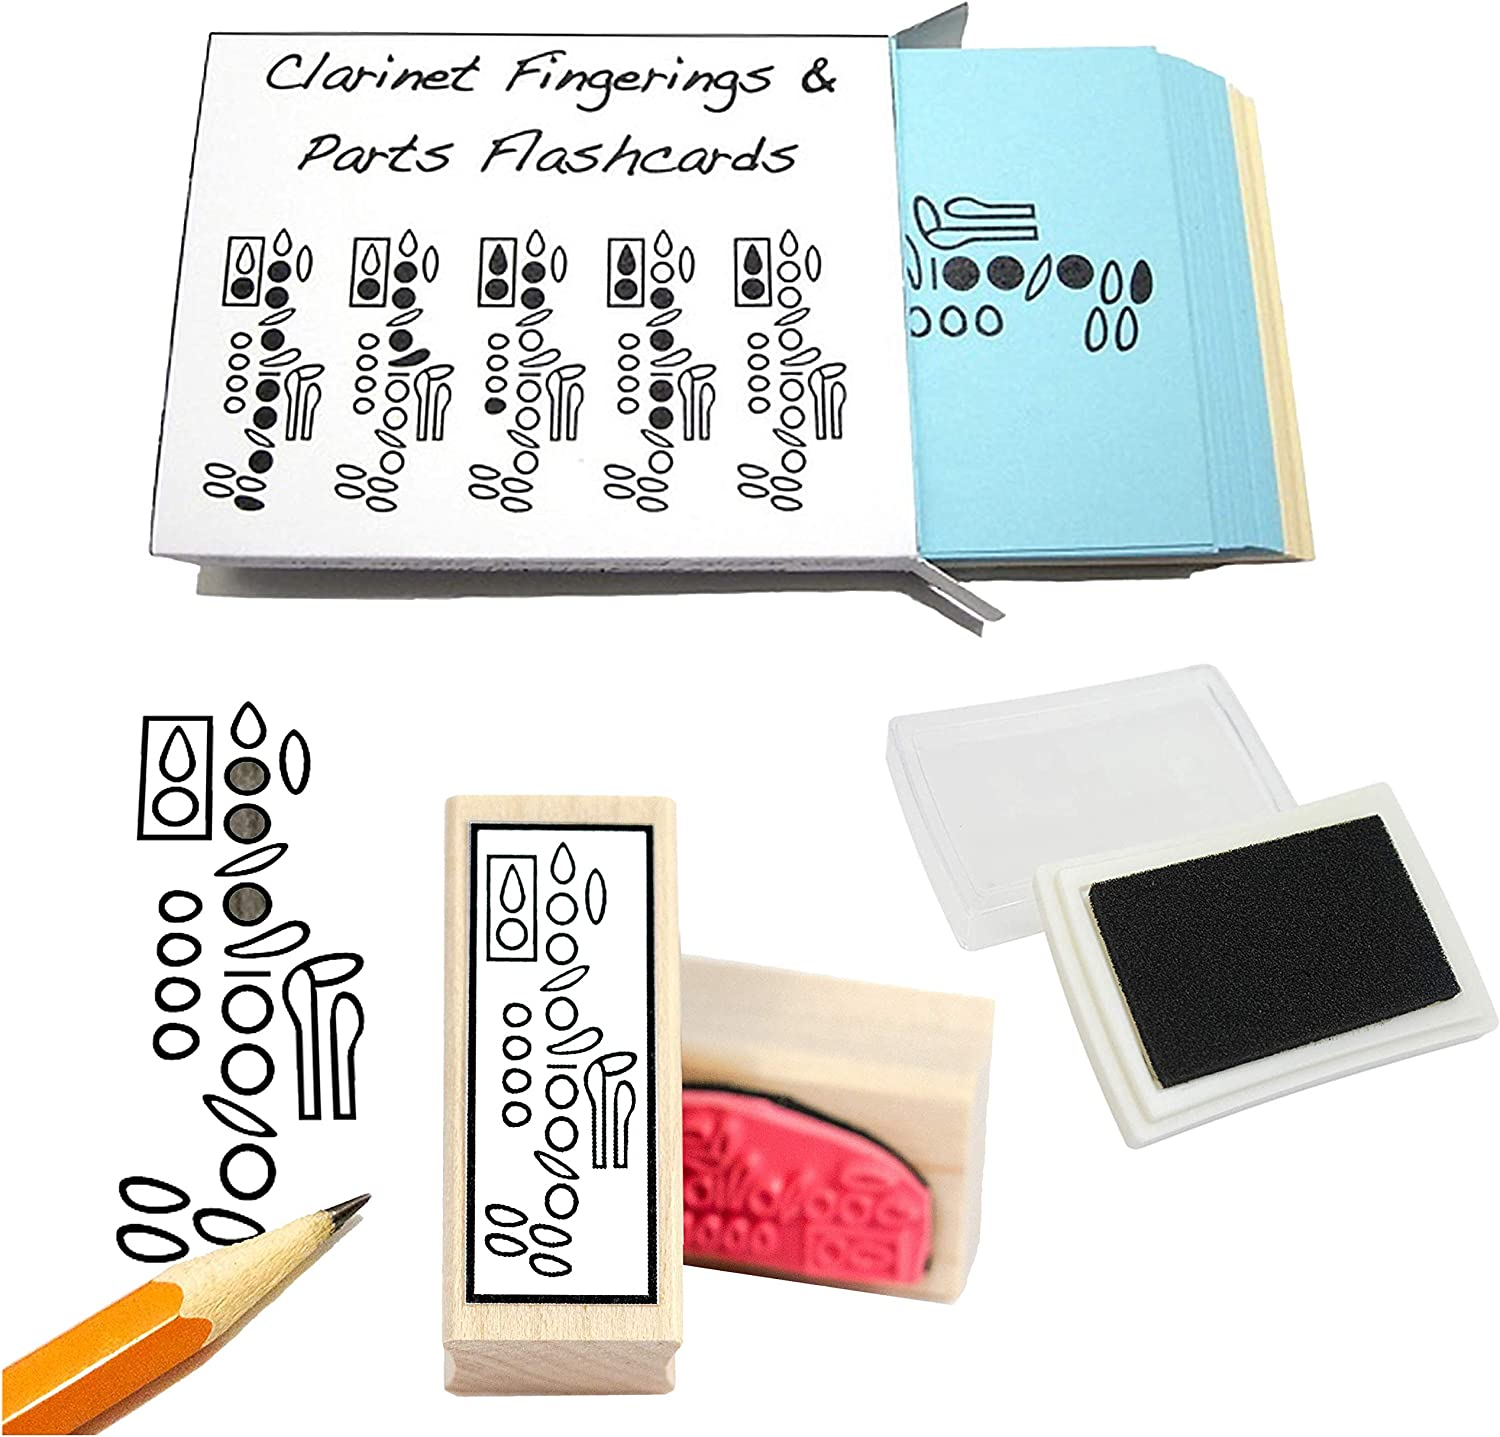 Clarinet Student Gift Industry No. 1 Max 44% OFF Pack Fingering Stamp Flashcards Rubber